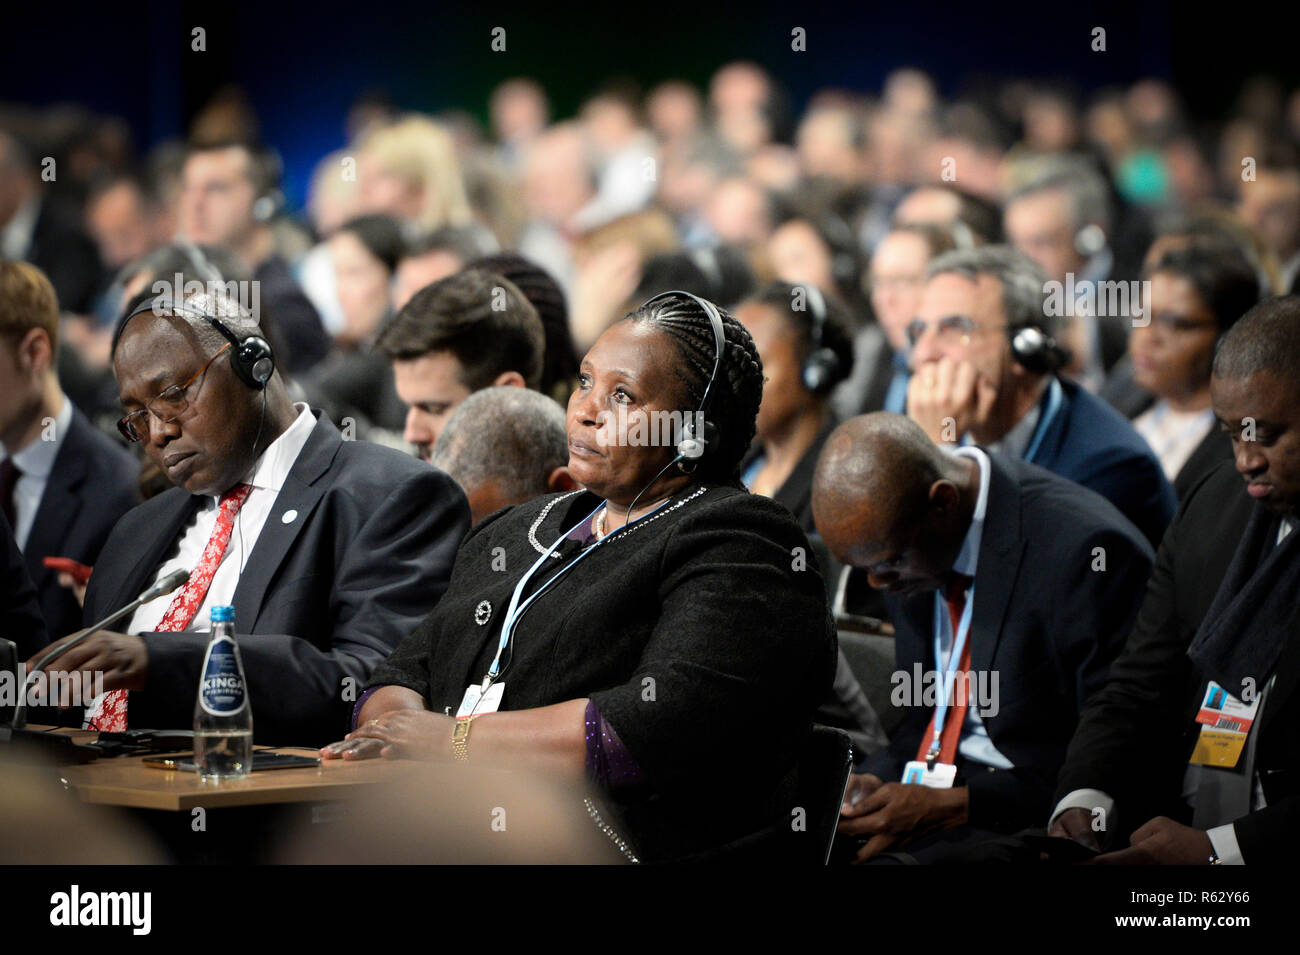 Katowice, Poland. 3rd Dec, 2018. Delegates attend the UN Climate Change Conference in Katowice, Poland, Dec. 3, 2018. Delegates from nearly 200 countries began talks on Sunday on urgent actions to curb climate change three years after the landmark Paris Climate Change Agreement set a goal of keeping global warming below 2 degrees Celsius. The two-week UN Climate Change Conference, known as COP24, is held in the southern Polish city of Katowice. Credit: Jaap Arriens/Xinhua/Alamy Live News - Stock Image